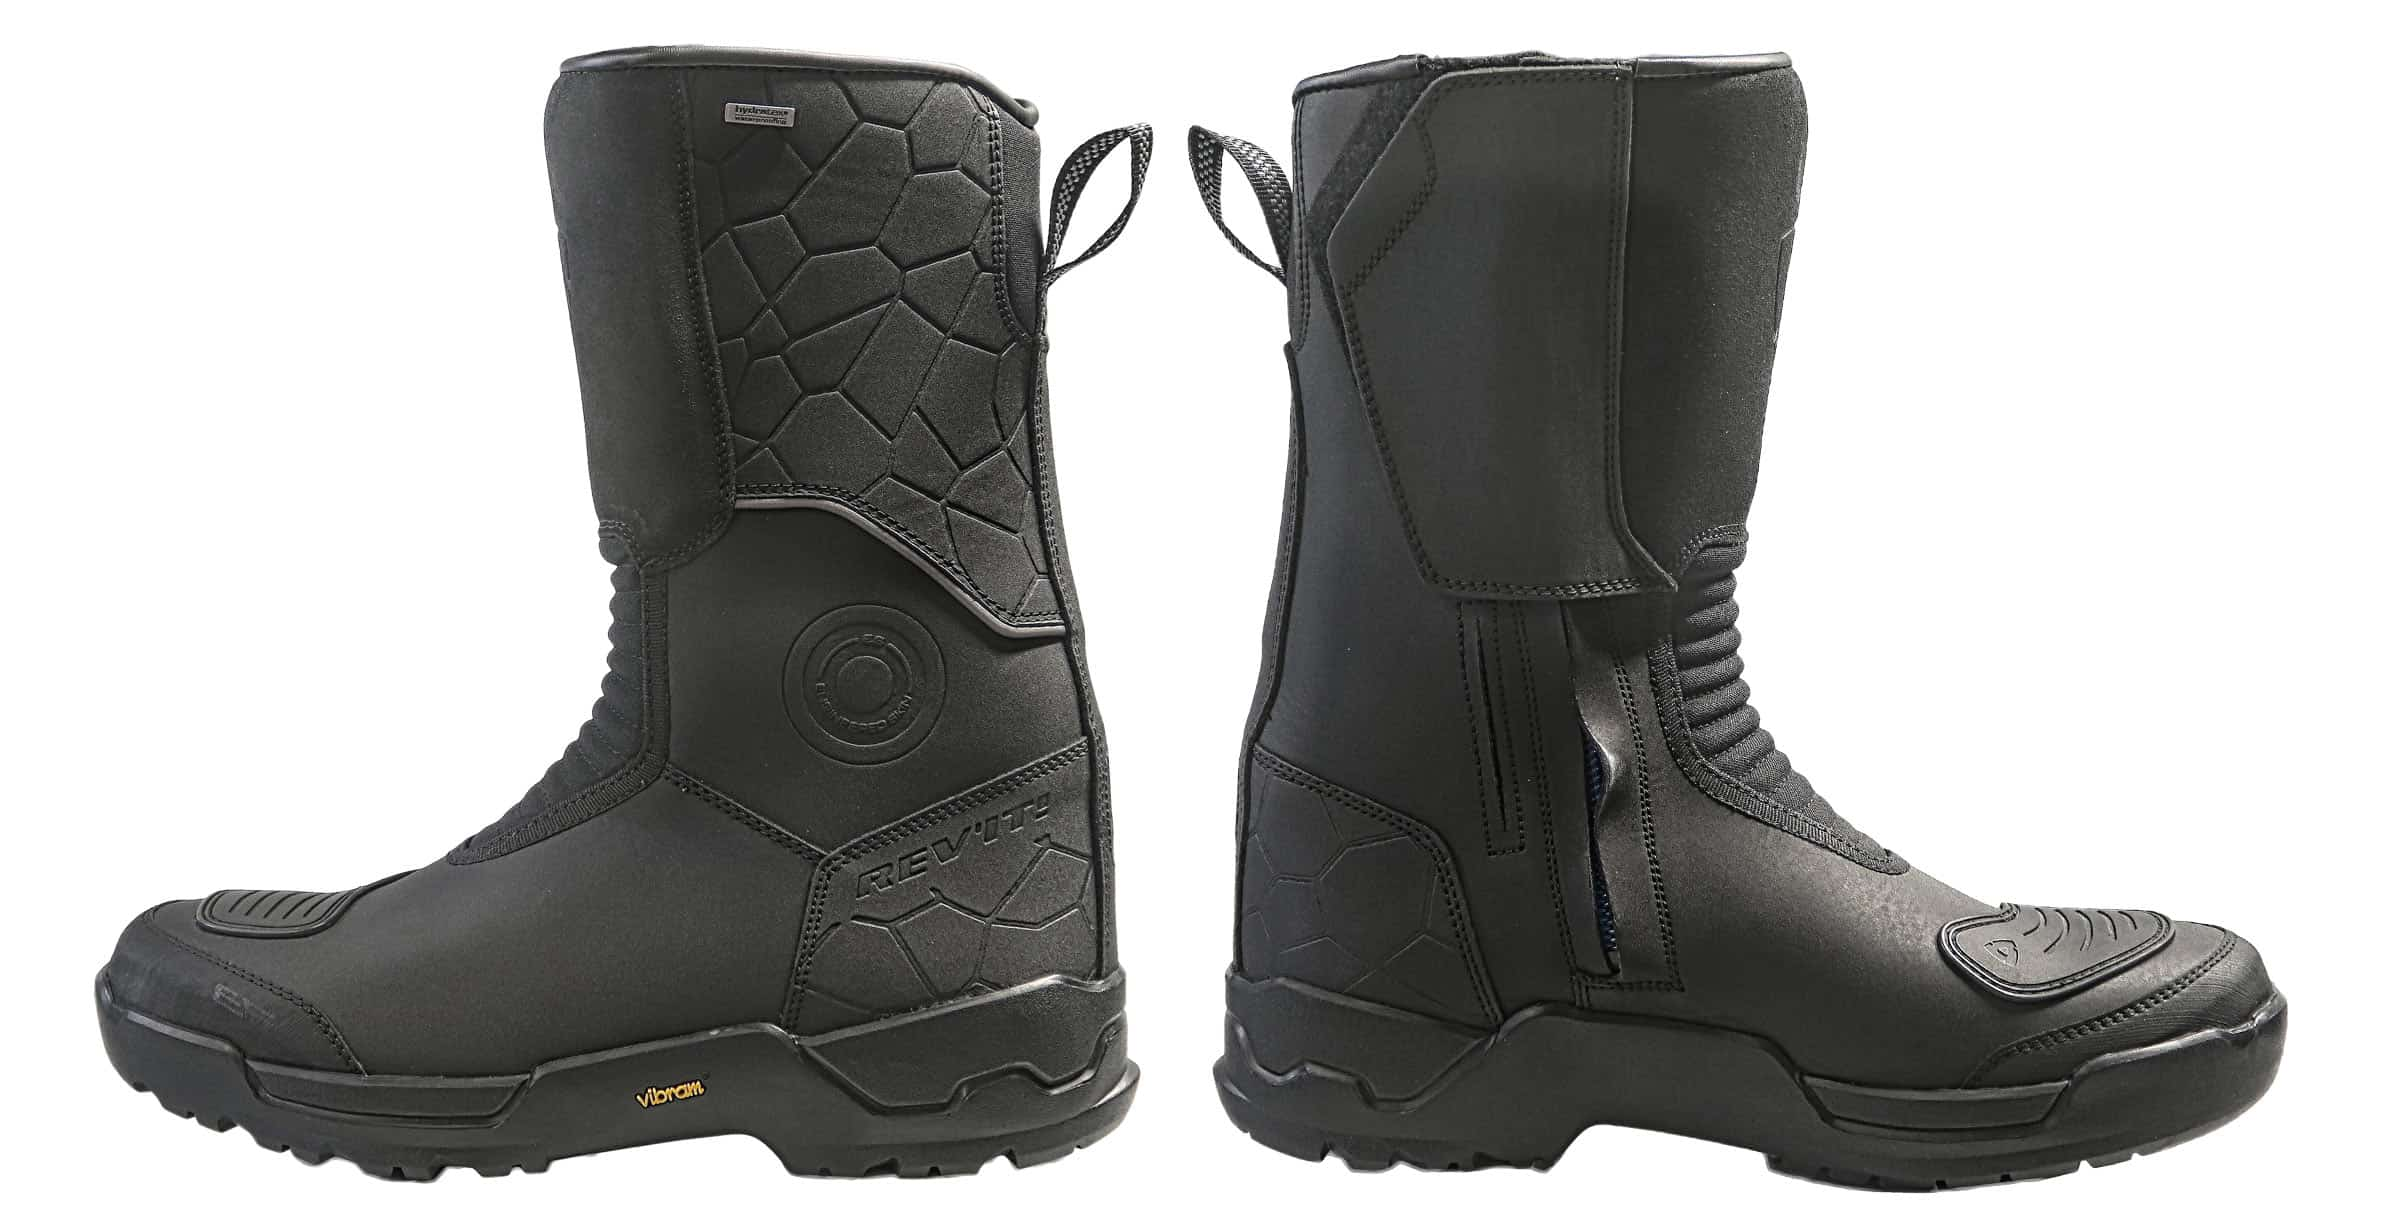 Rev It Trail Adventure Motorcycle Boots Review